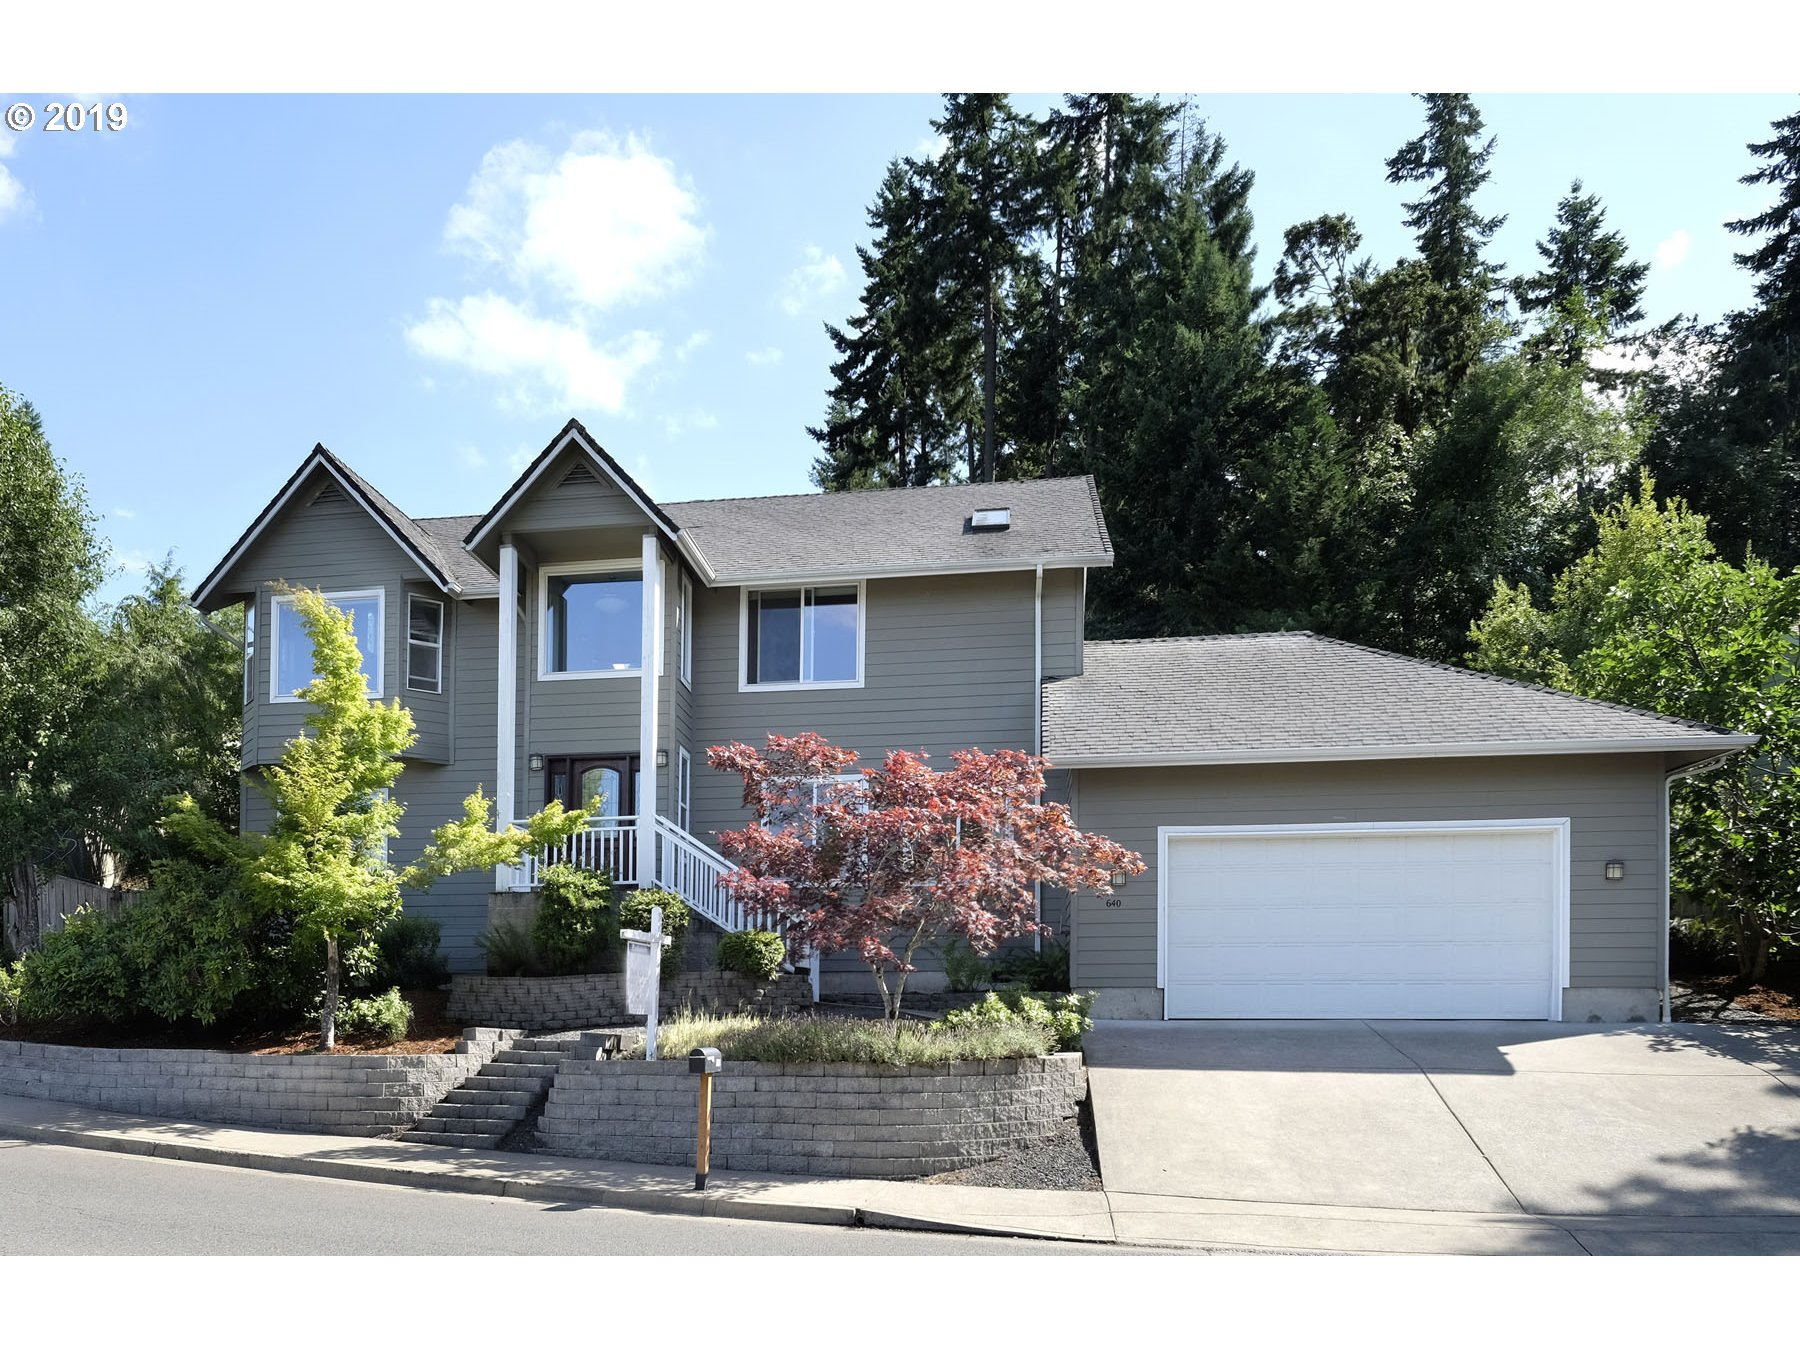 640 DEERTRAIL RD, Eugene OR 97405